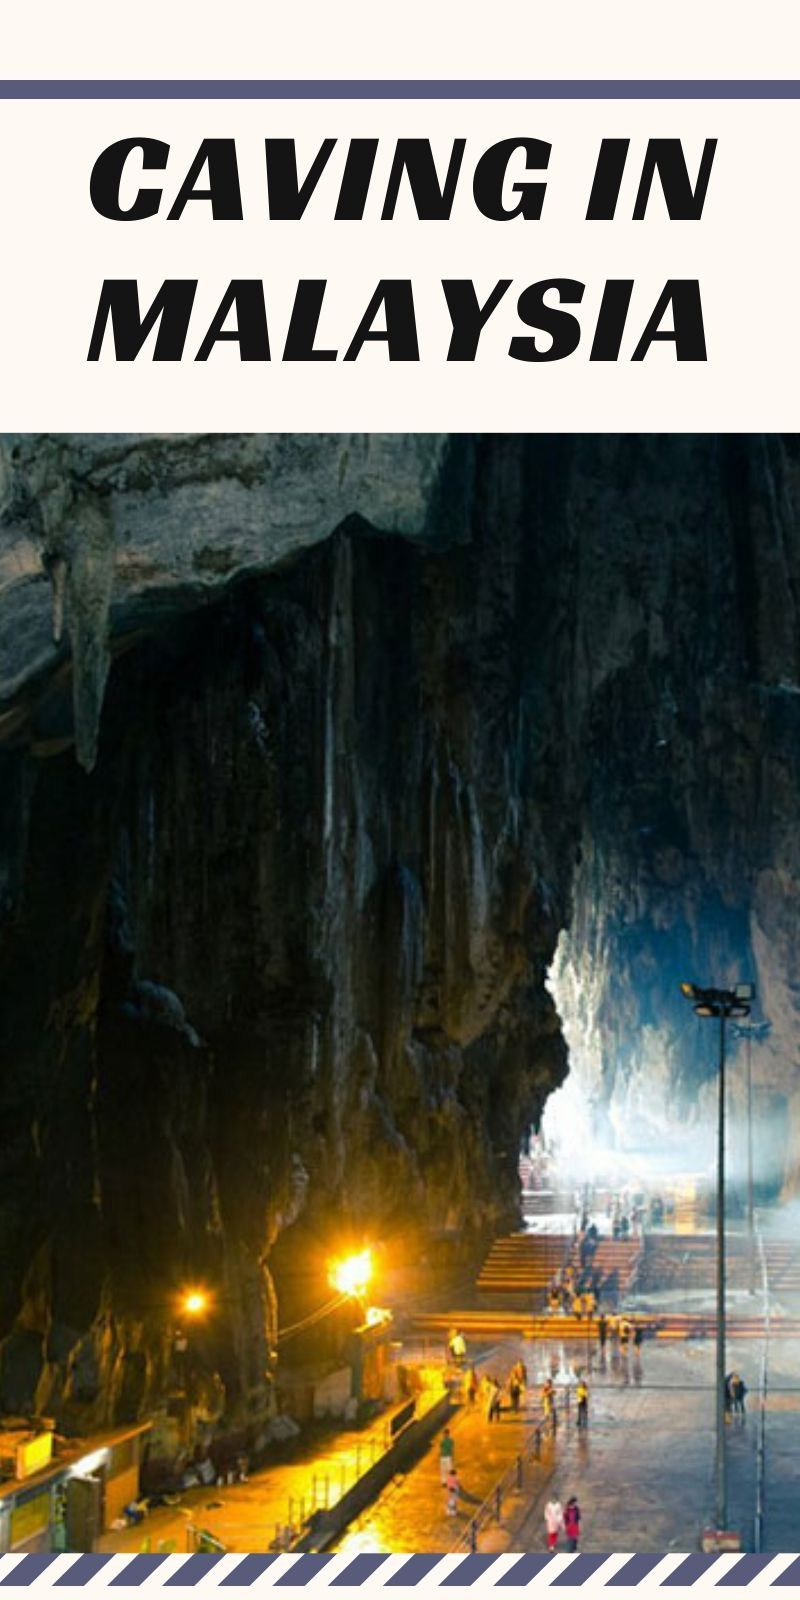 It's surprising that Malaysia doesn't belong to any international cave associations and has so few active spelunkers in its population #adventureactivities #adventuretravel #caving #malaysia